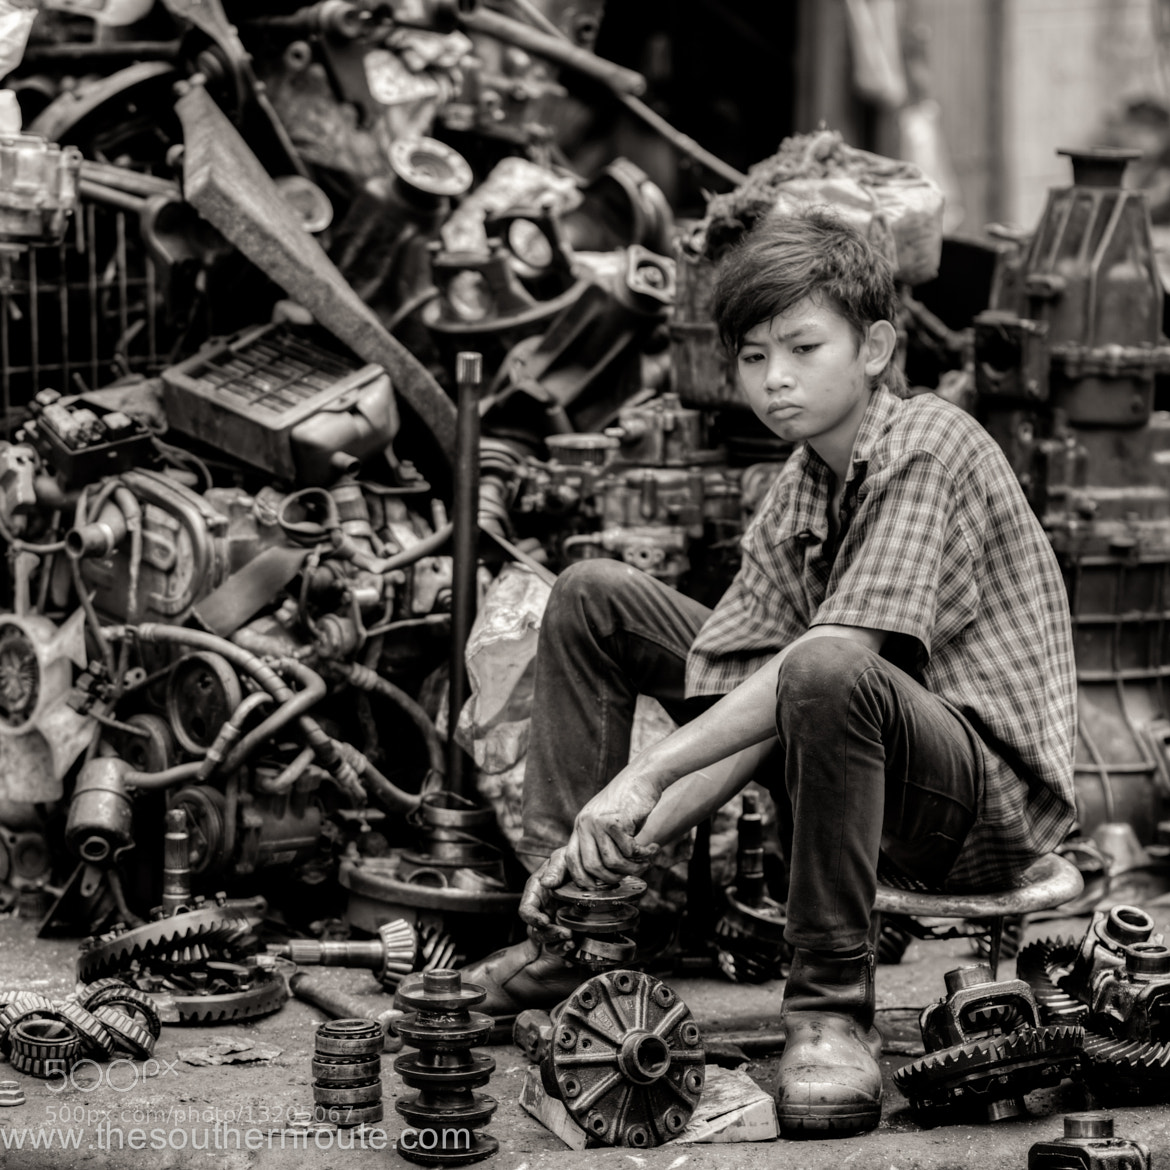 Photograph Youth has no age by regis boileau on 500px